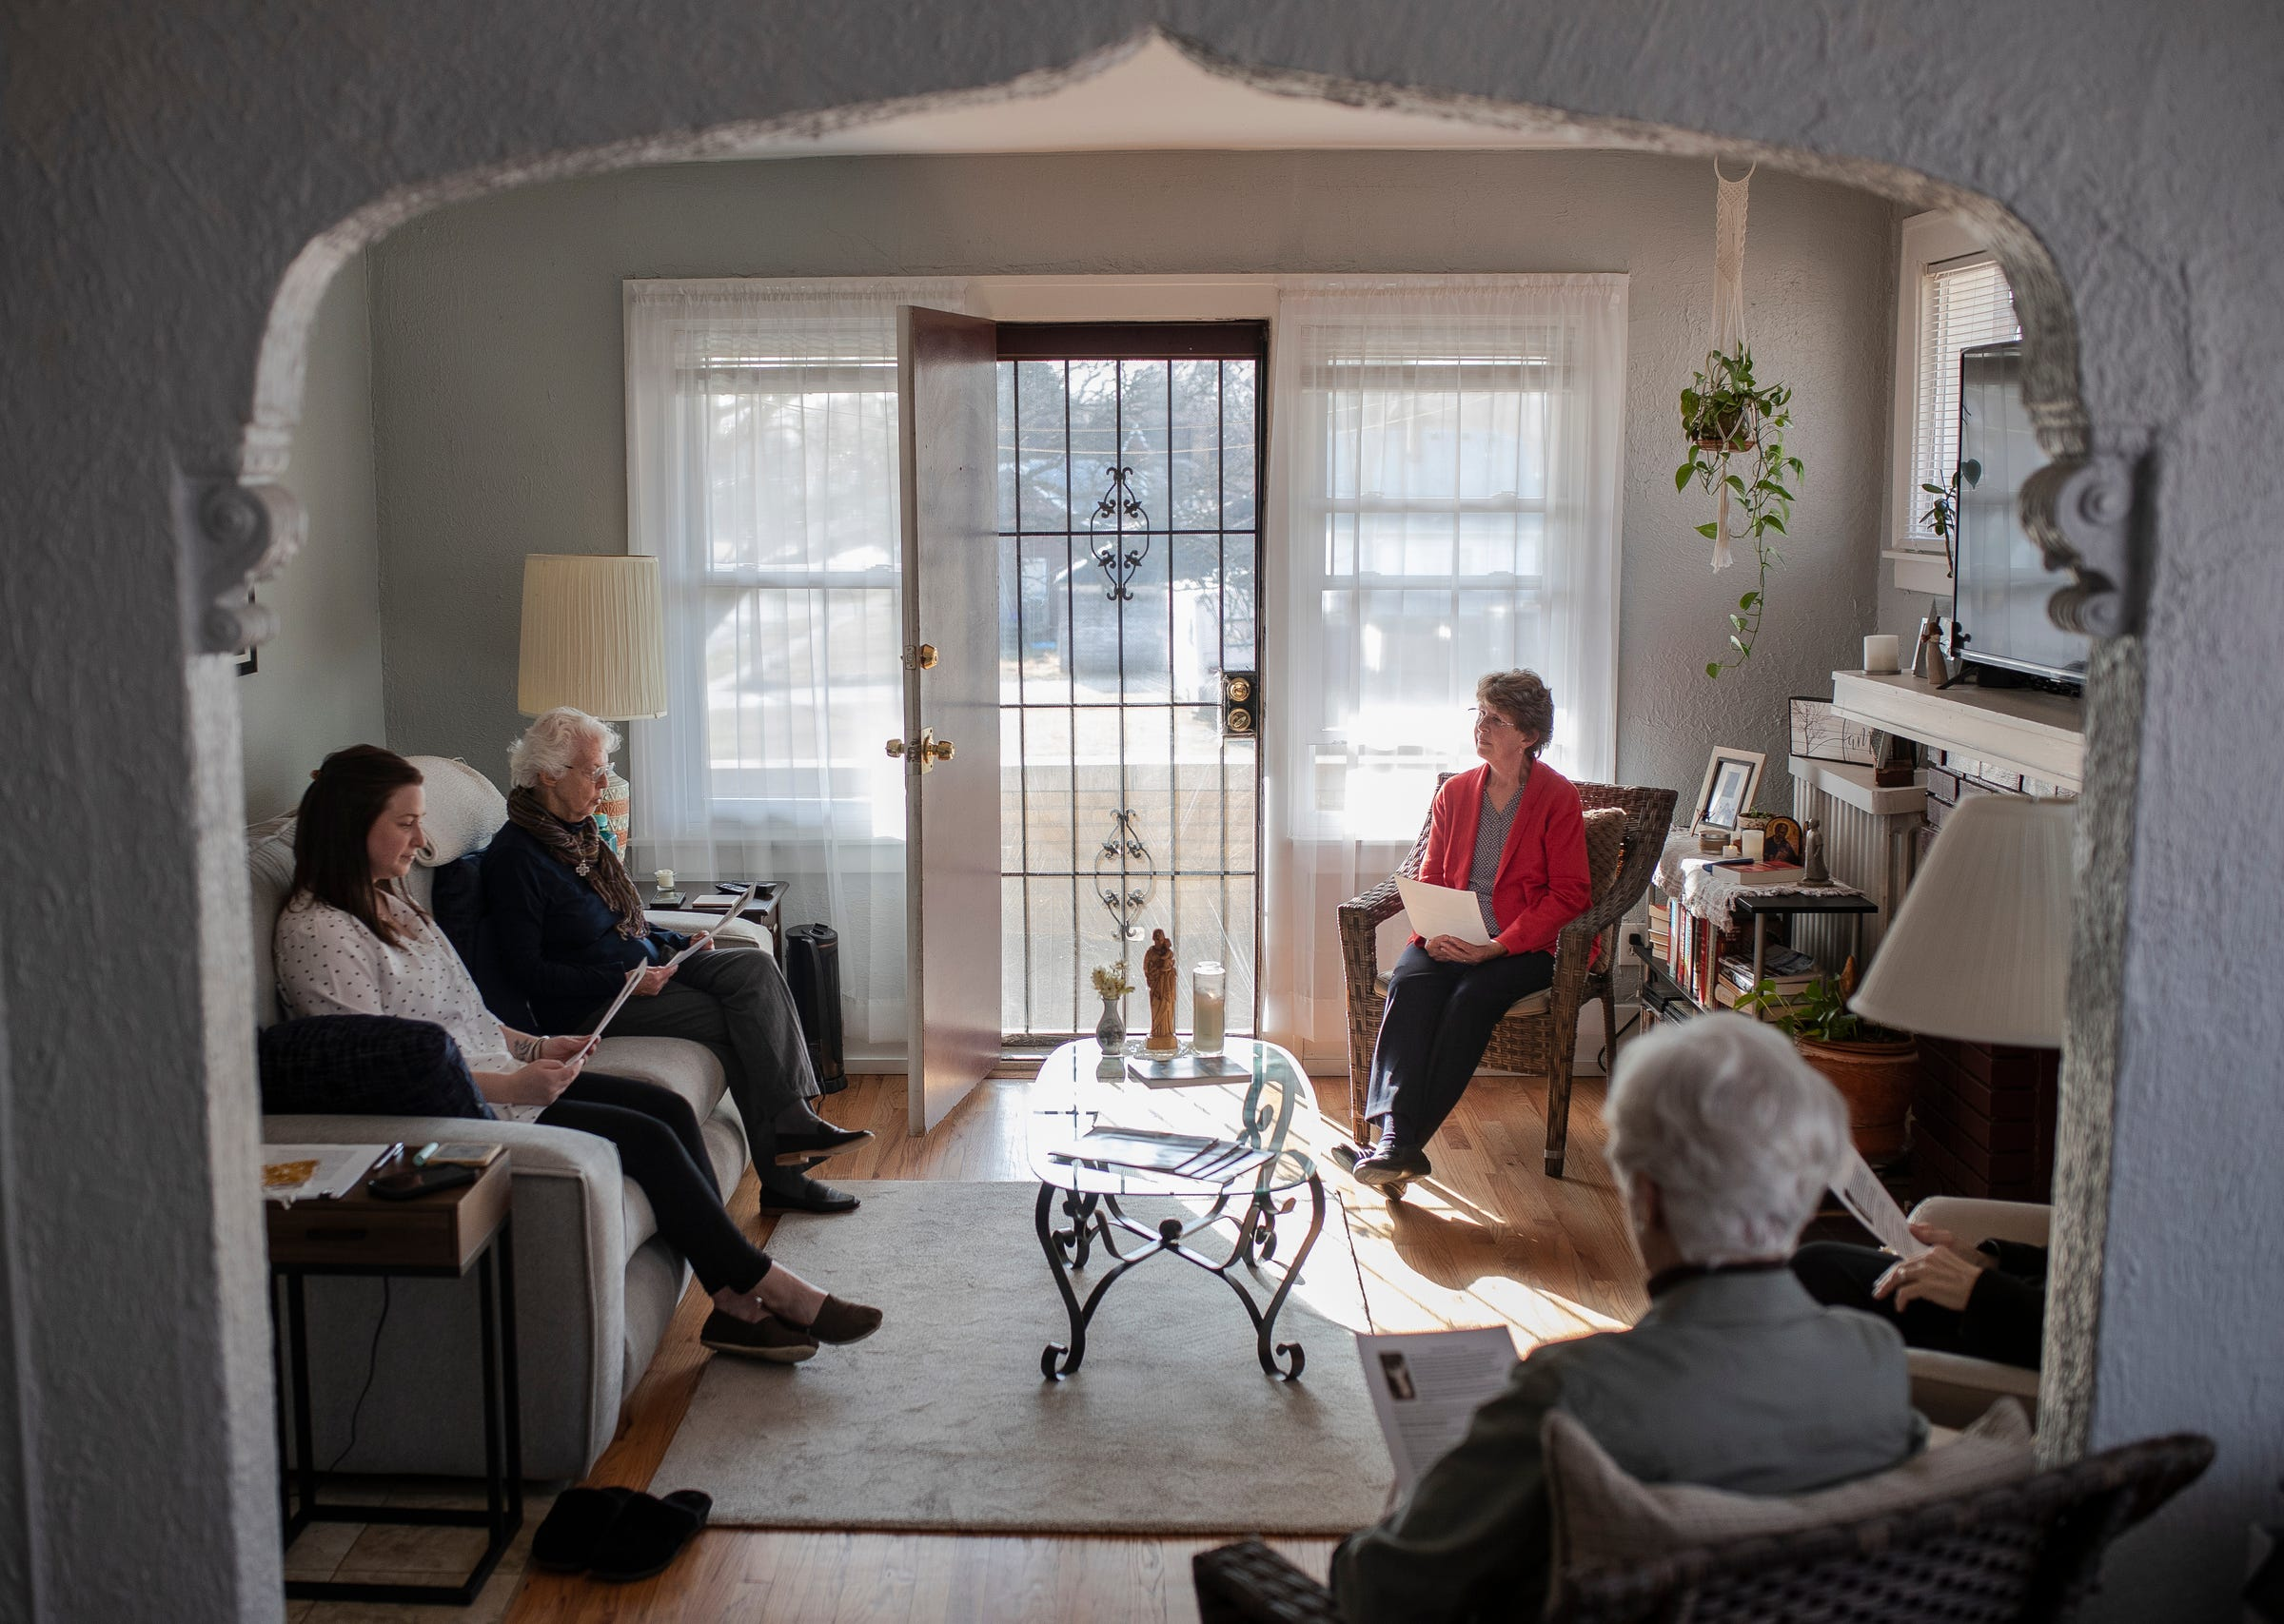 From left, Sister Erin McDonald, Sister Marcella Clancy, Sister Marie Hogan, Sister Jeanne Gamache and Sister Marie Benzing pray together to celebrate Saint Joseph's Day at Sister Erin McDonald and Sister Marcella Clancy's apartment in Detroit on March 19, 2021.